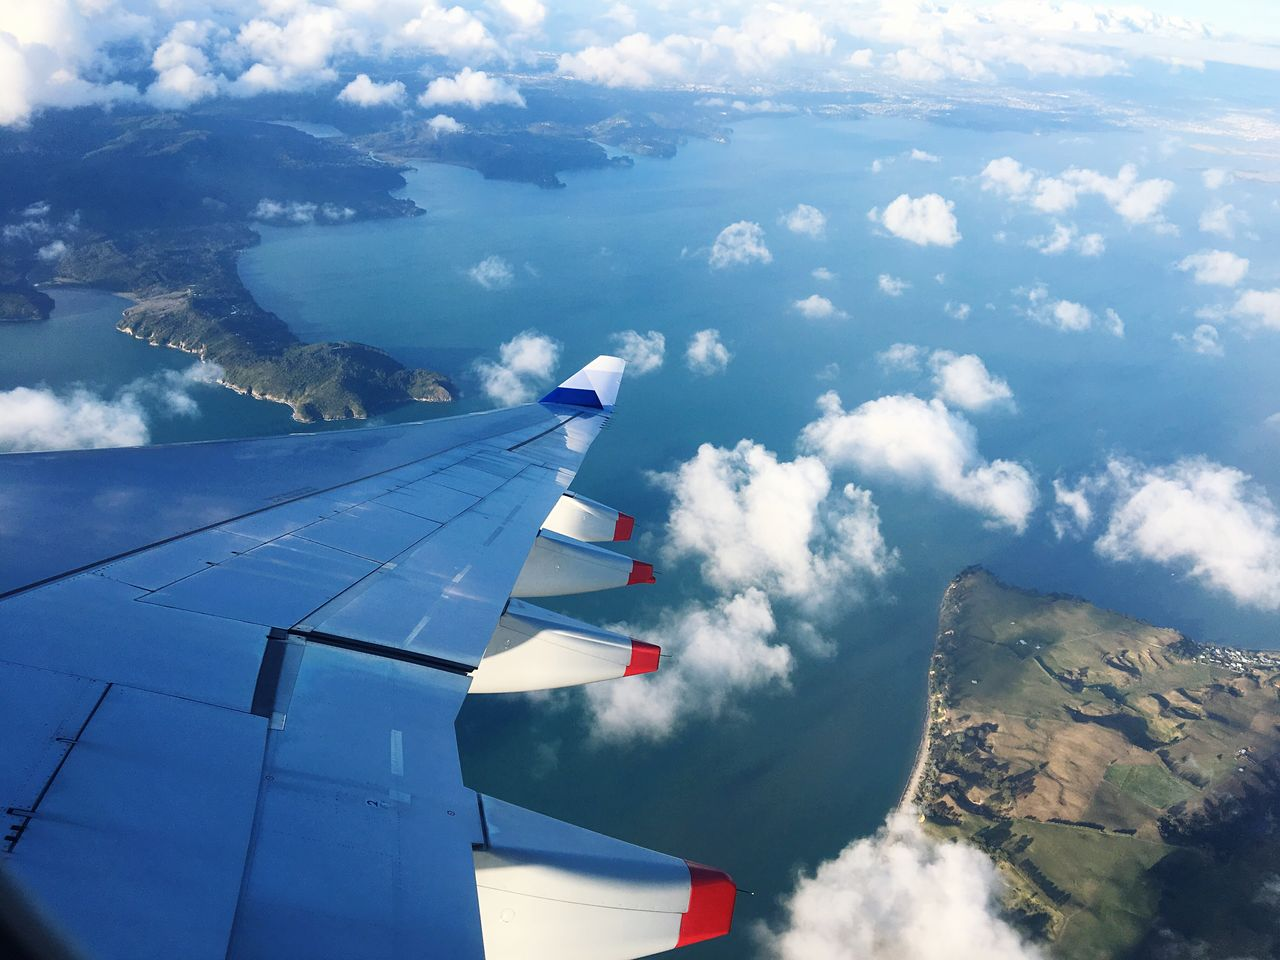 cloud - sky, airplane, sky, blue, day, nature, no people, transportation, outdoors, flying, beauty in nature, mid-air, airplane wing, air vehicle, scenics